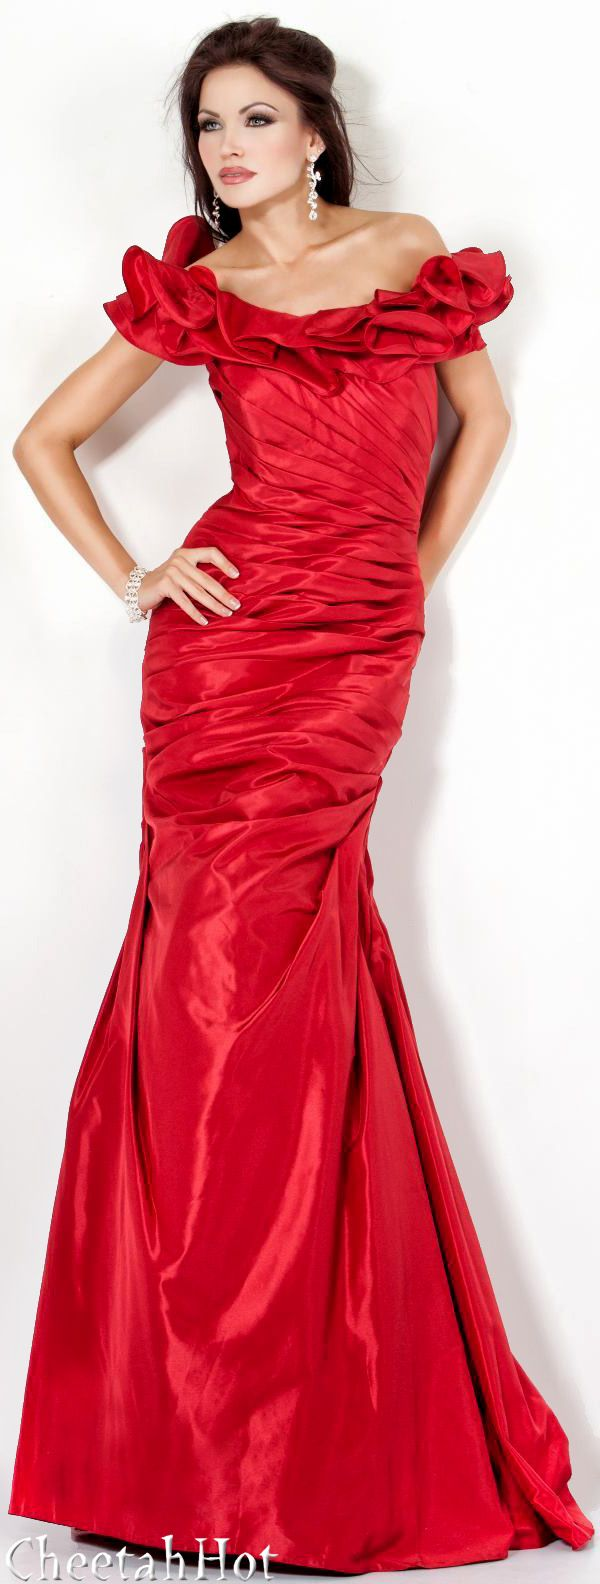 Magnificent Prom Dress Stores In Minneapolis Ideas - Colorful ...